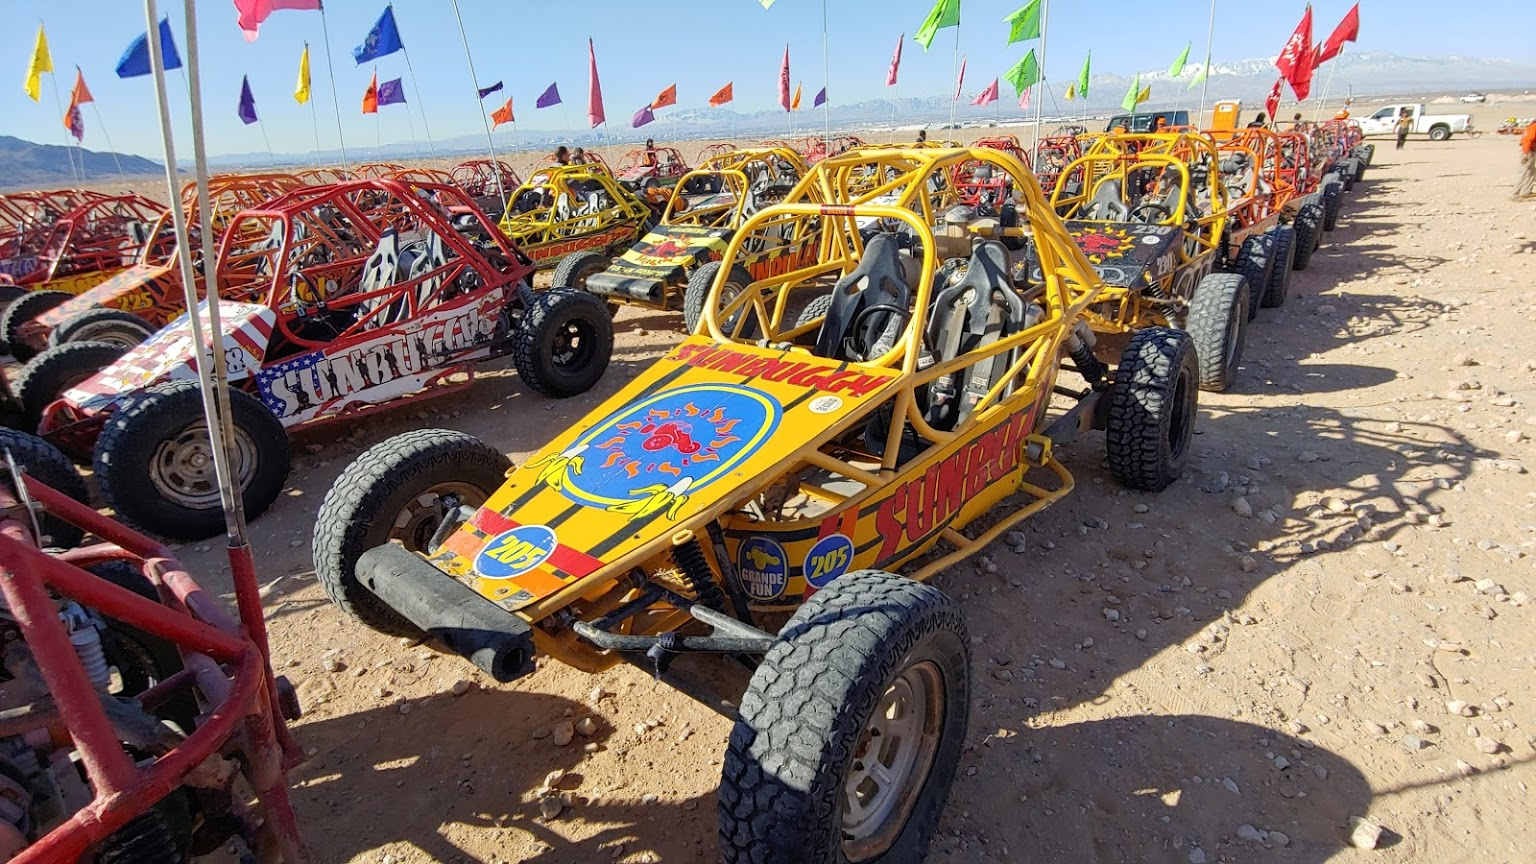 So Many Dune Buggies at SunBuggy Las Vegas